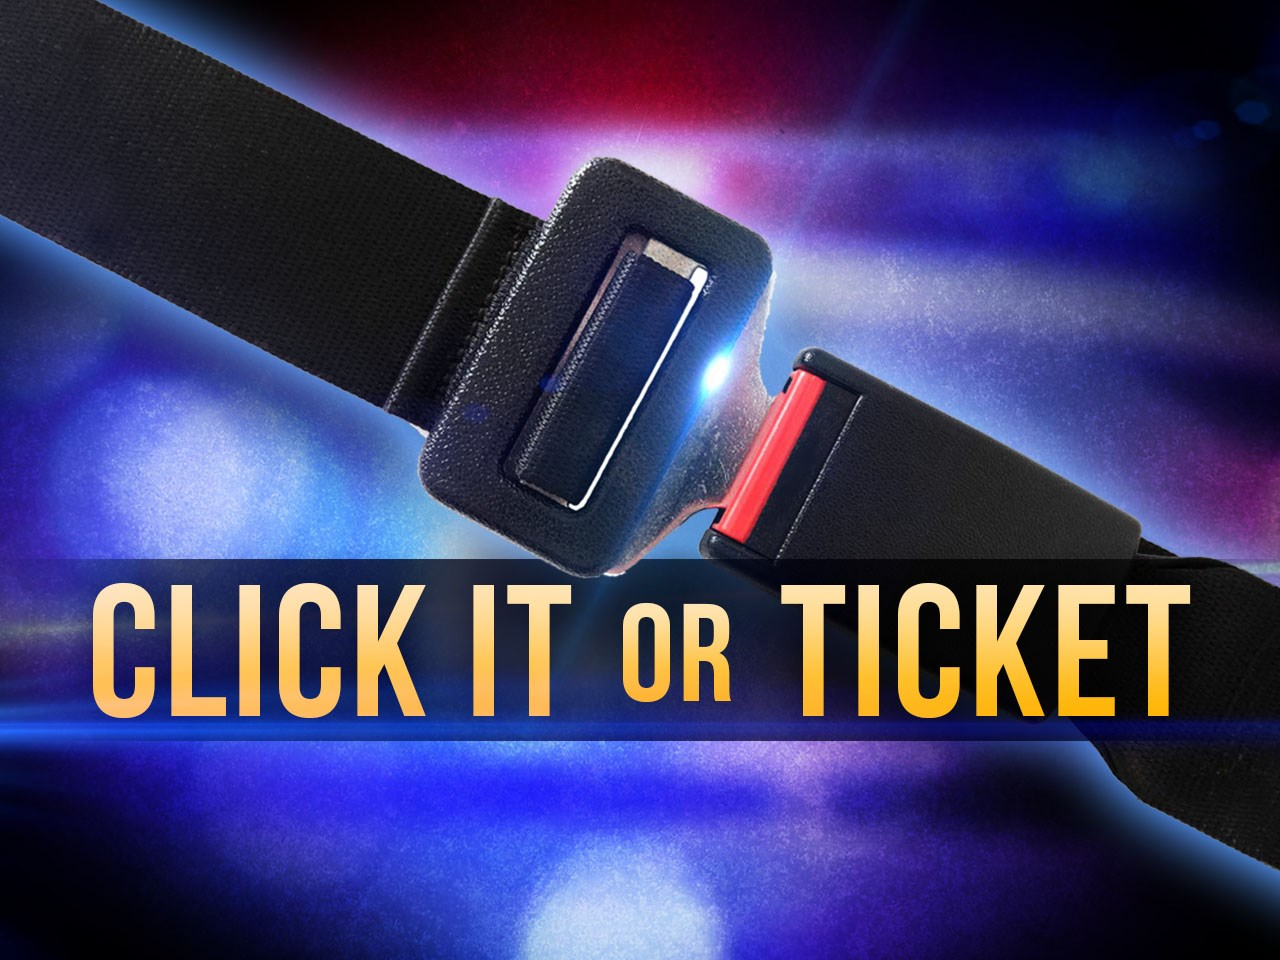 Click It Or Ticket GFX_1496205178945.jpg